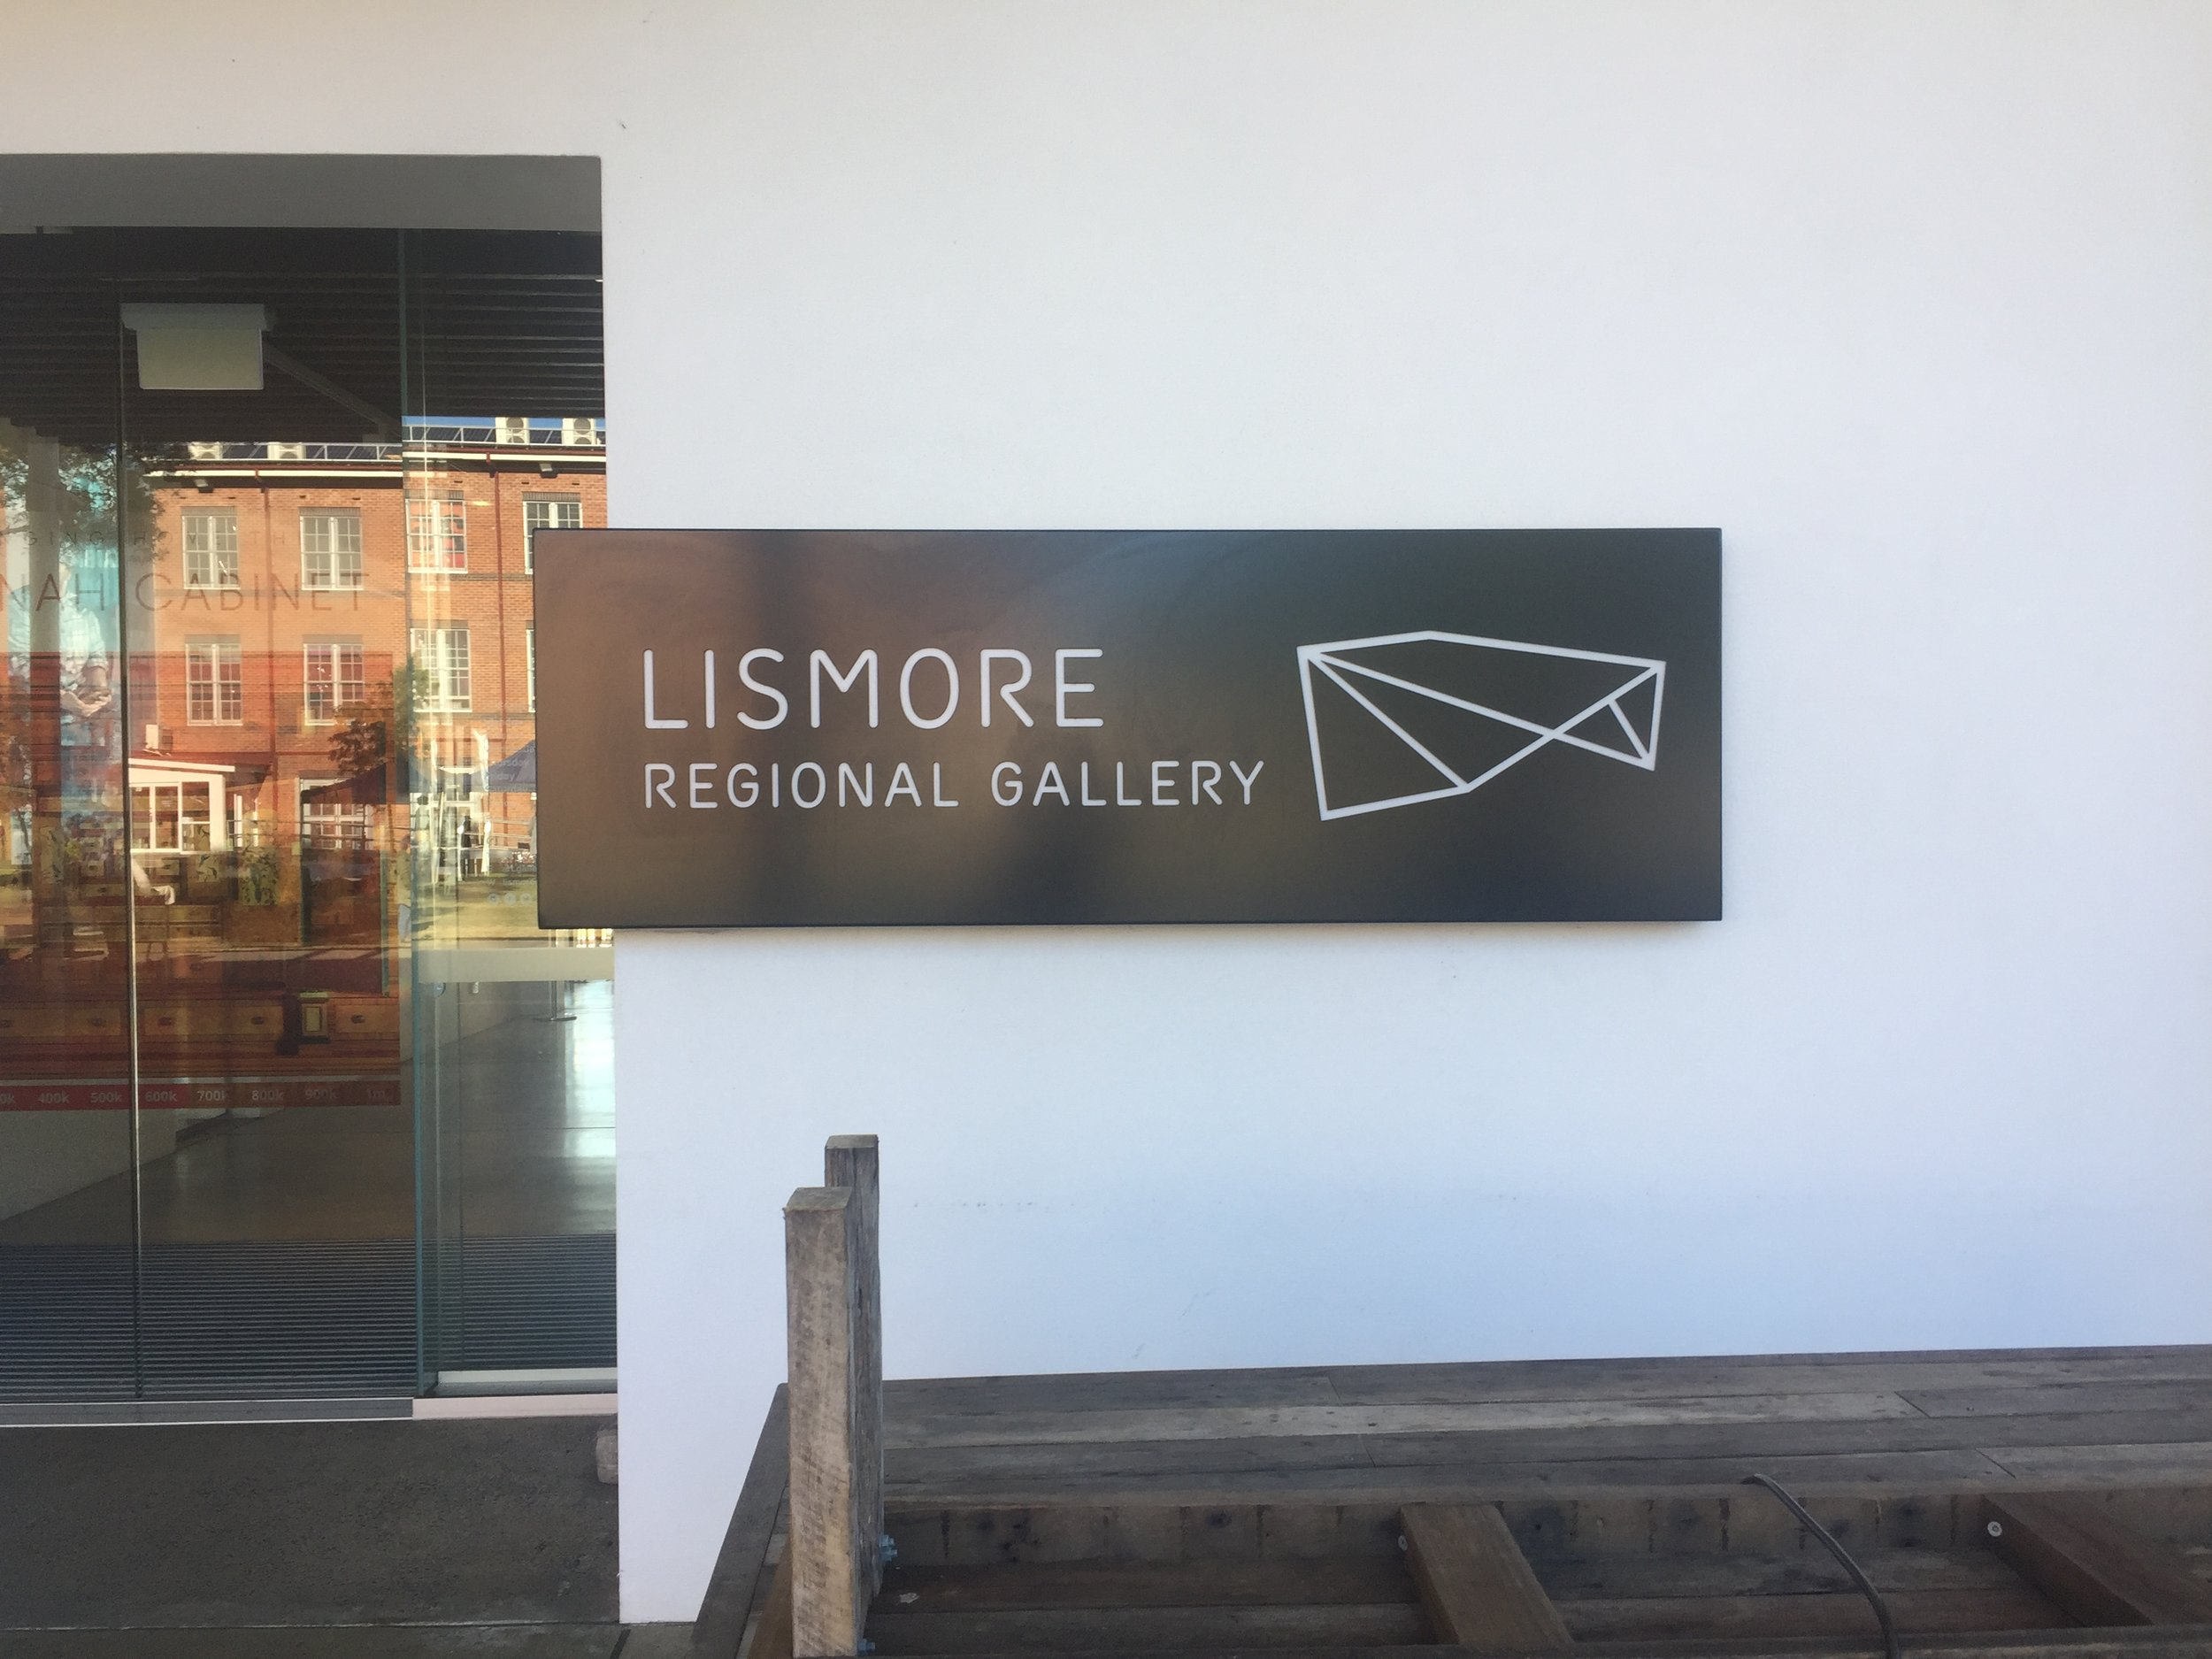 The new Lismore Regional Gallery, part of the town's civic centre Quadrangle alongside the Town Hall and Library.